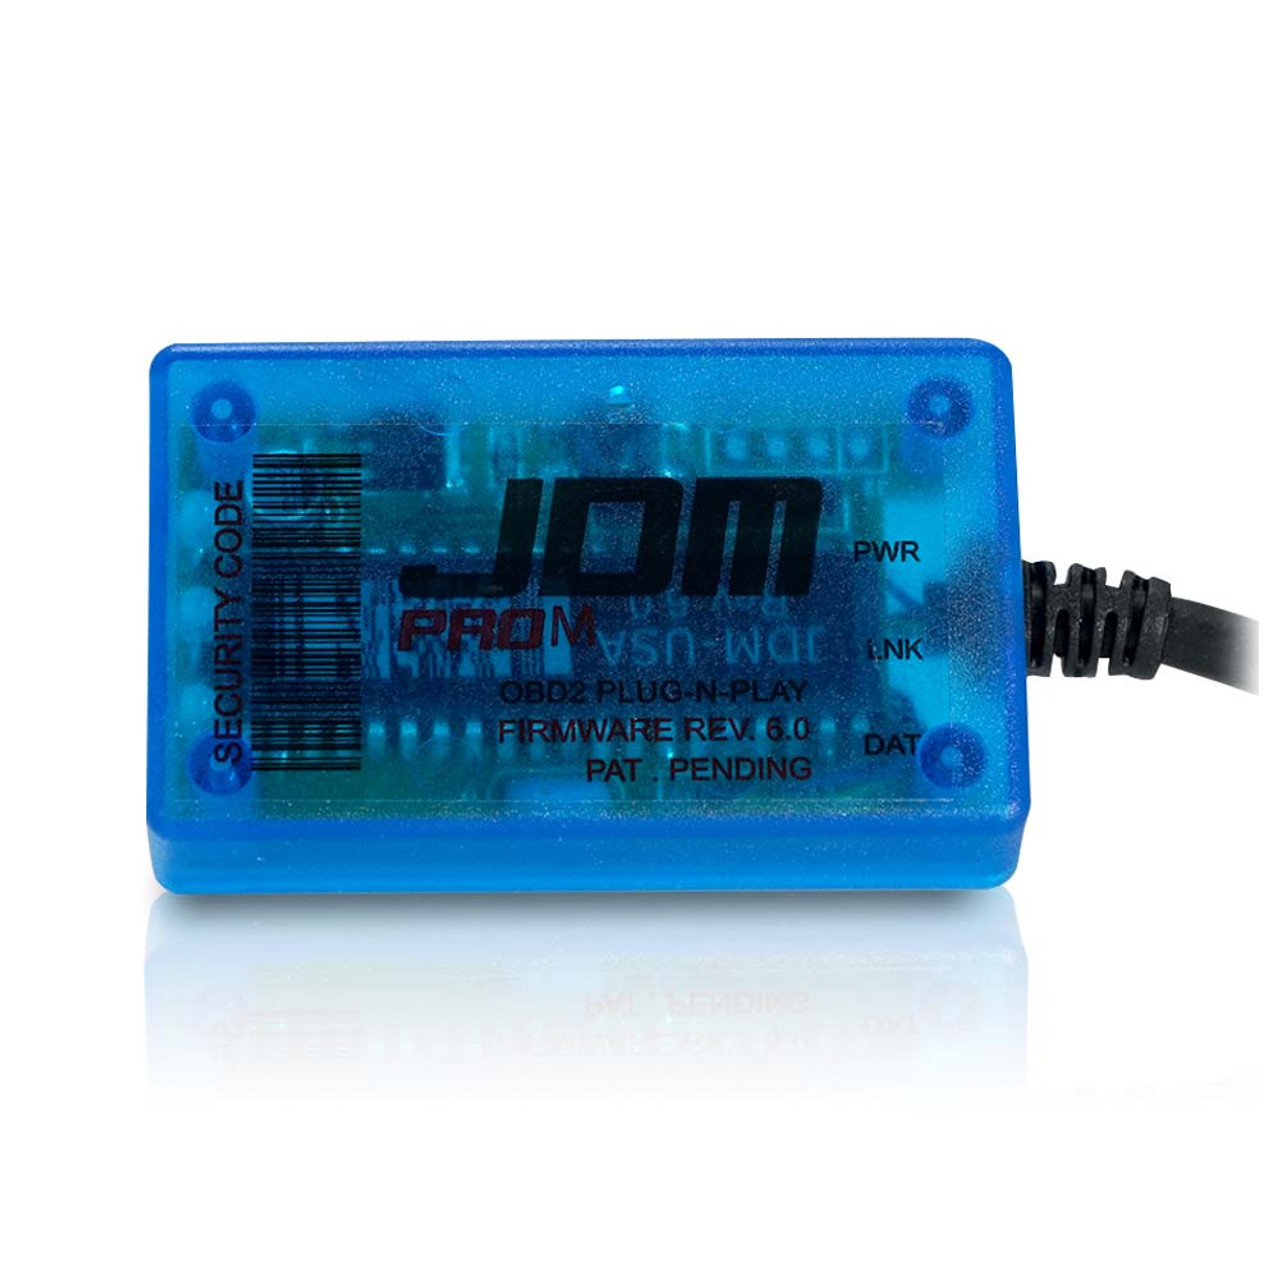 Fits Toyota Venza High-Performance Tuner Chip and Power Tuning Programmer Boost Horsepower and Torque